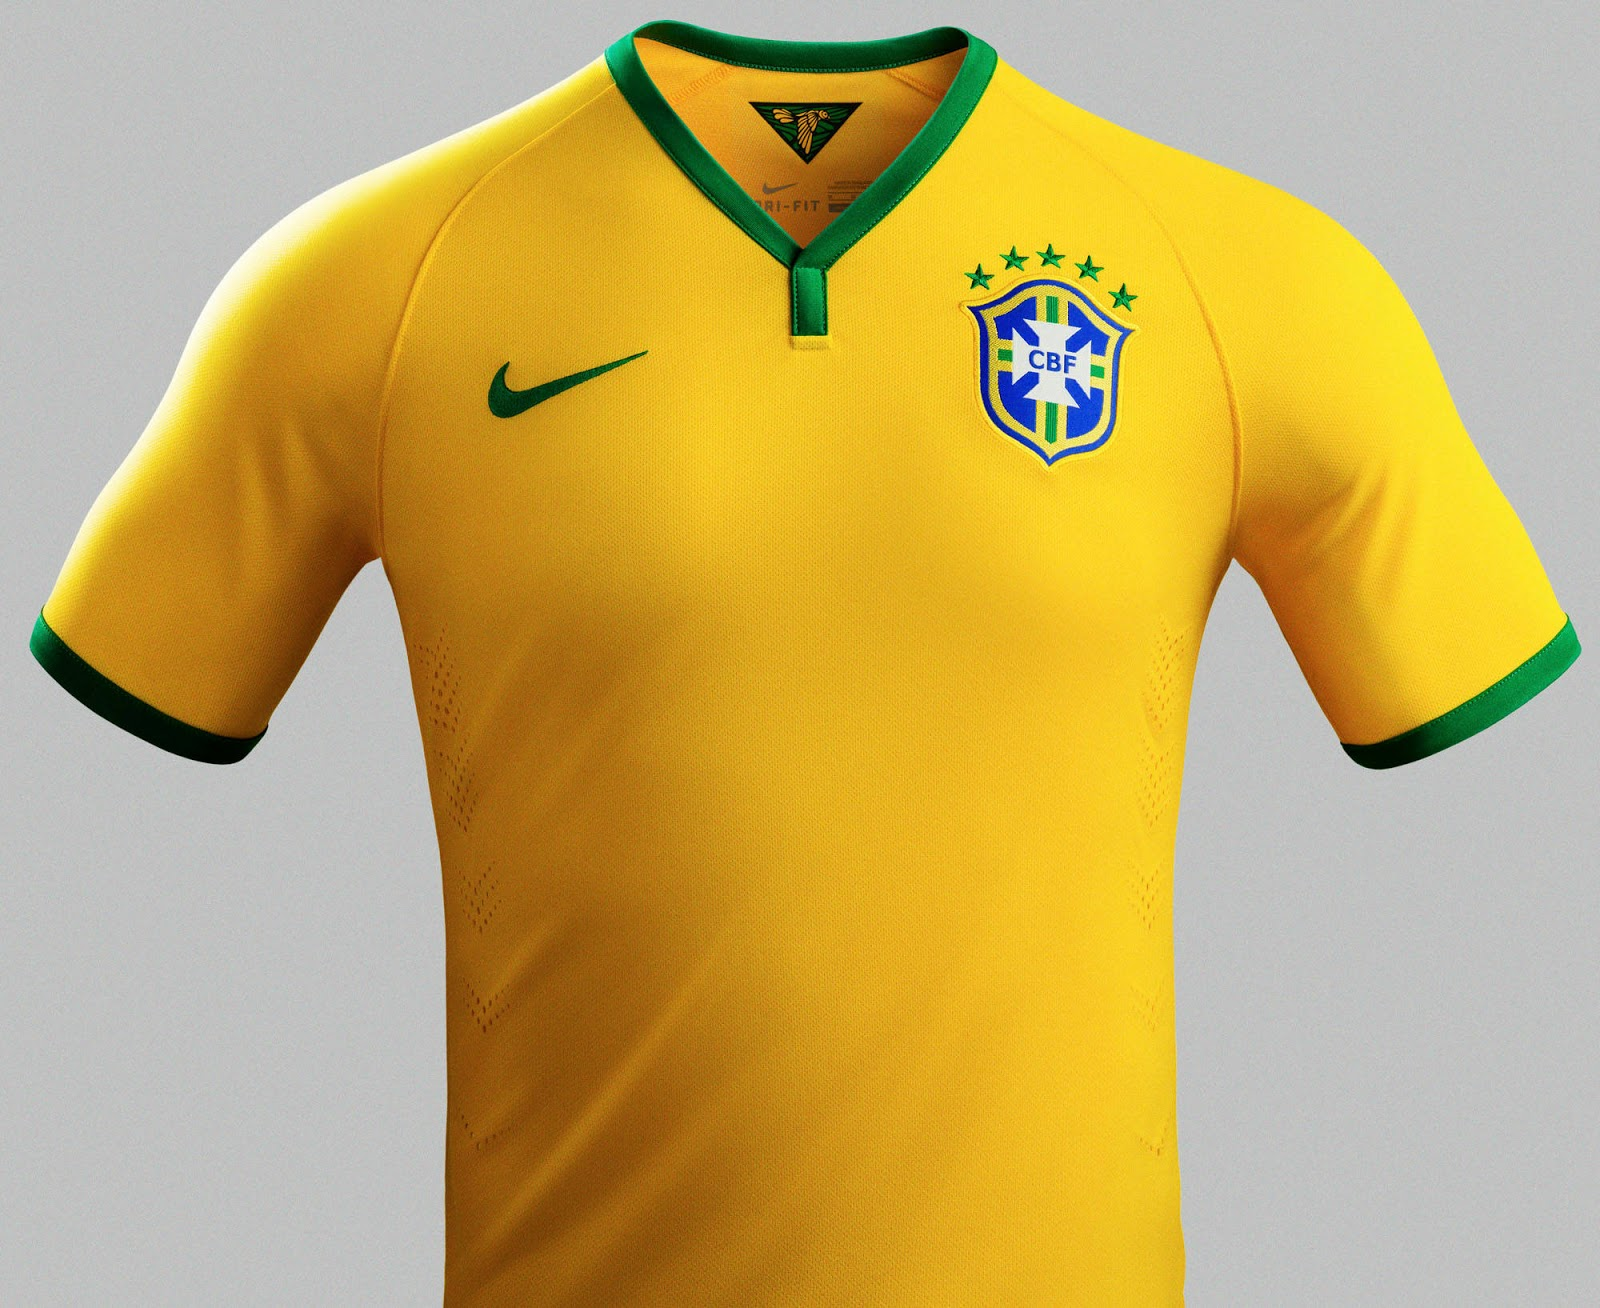 size 40 3a781 7d7a4 Looking To Get A Cheaper Football Jersey? Your Chances Are ...